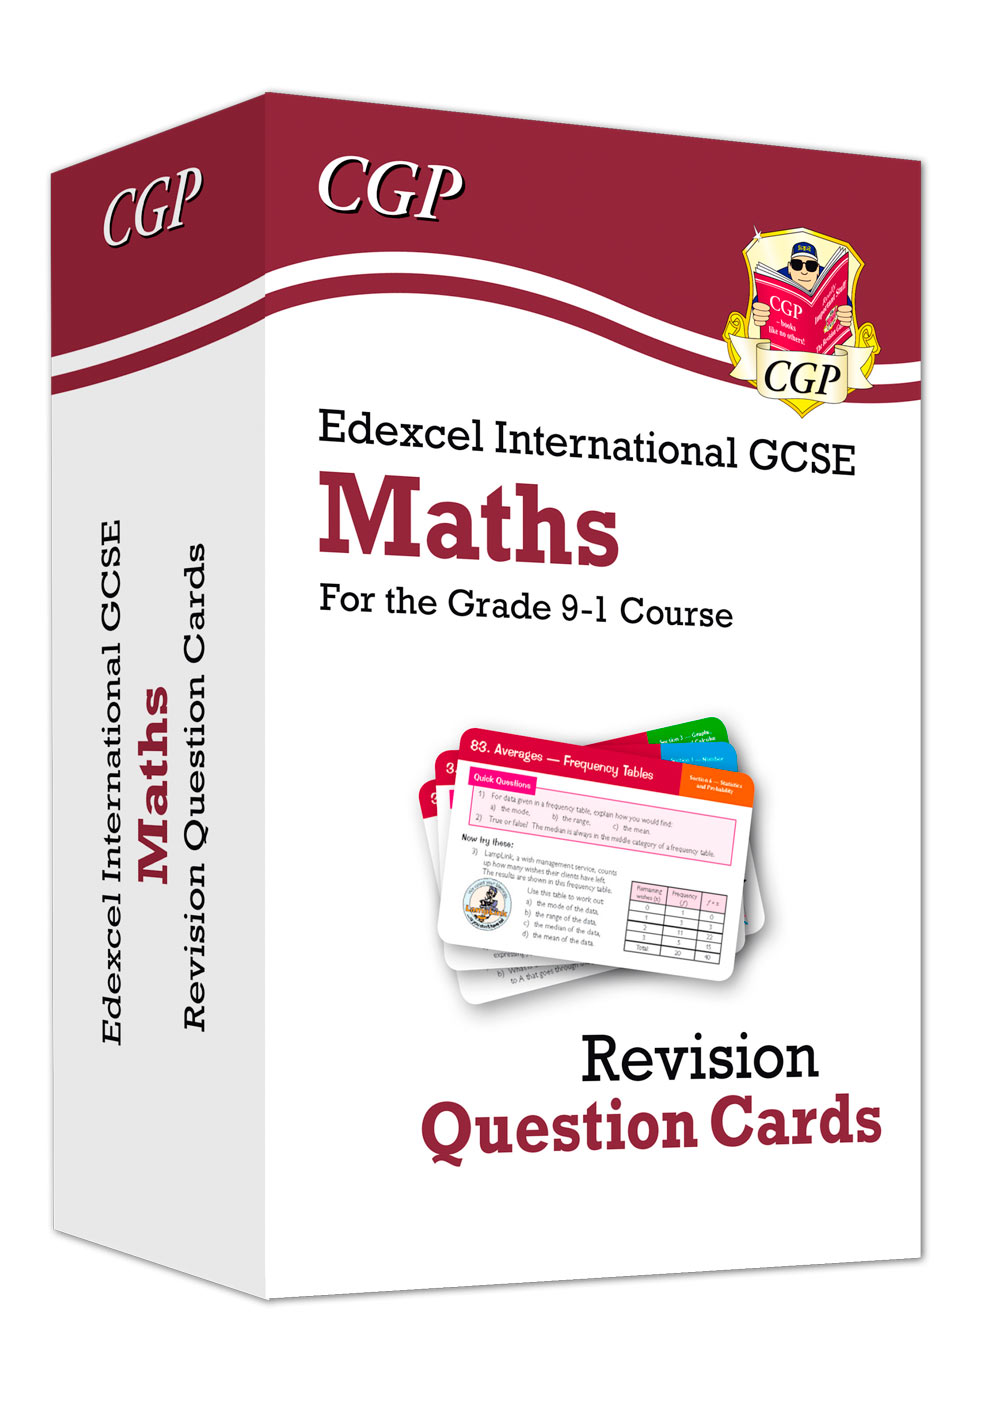 MEFI41 - New Grade 9-1 Edexcel International GCSE Maths: Revision Question Cards